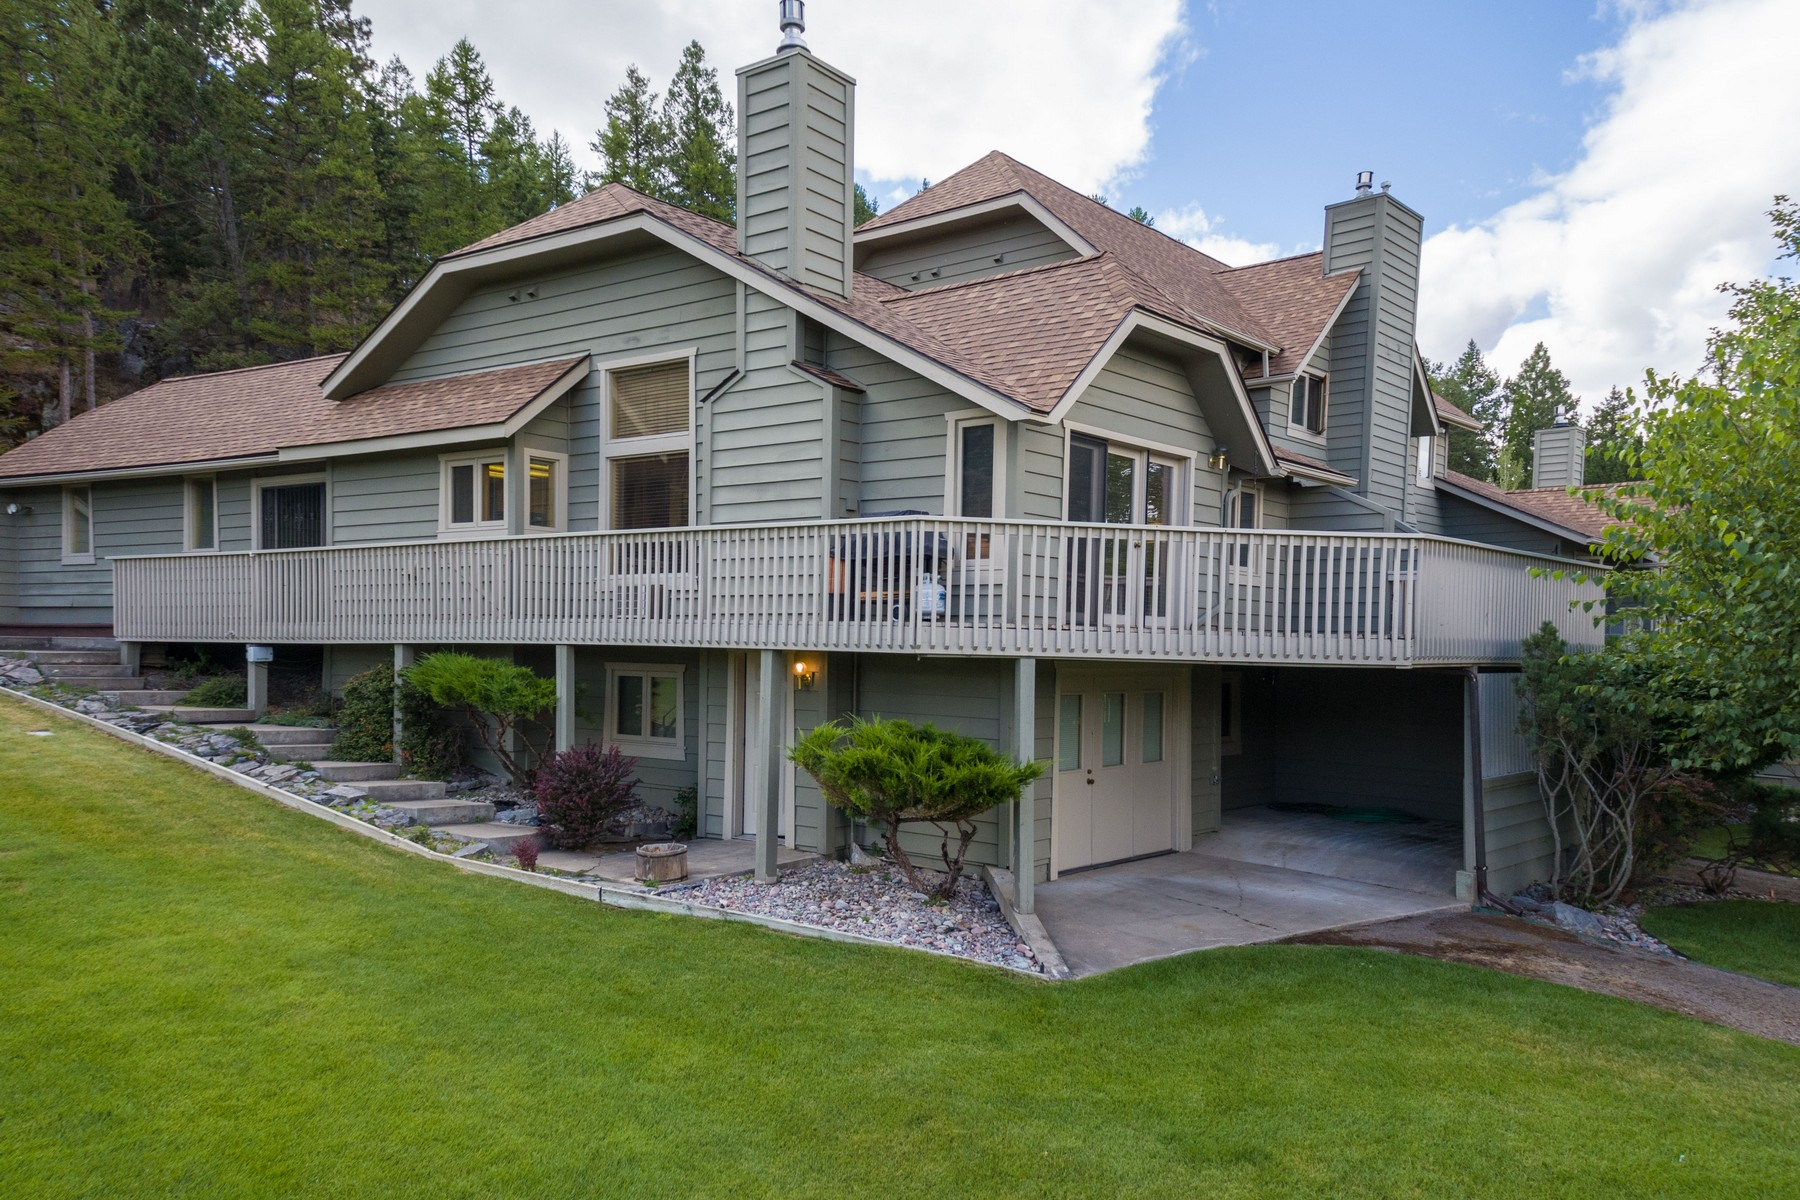 Single Family Home for Sale at Eagle Bend Townhouse 23 Golf Terrace Bigfork, Montana, 59911 United States